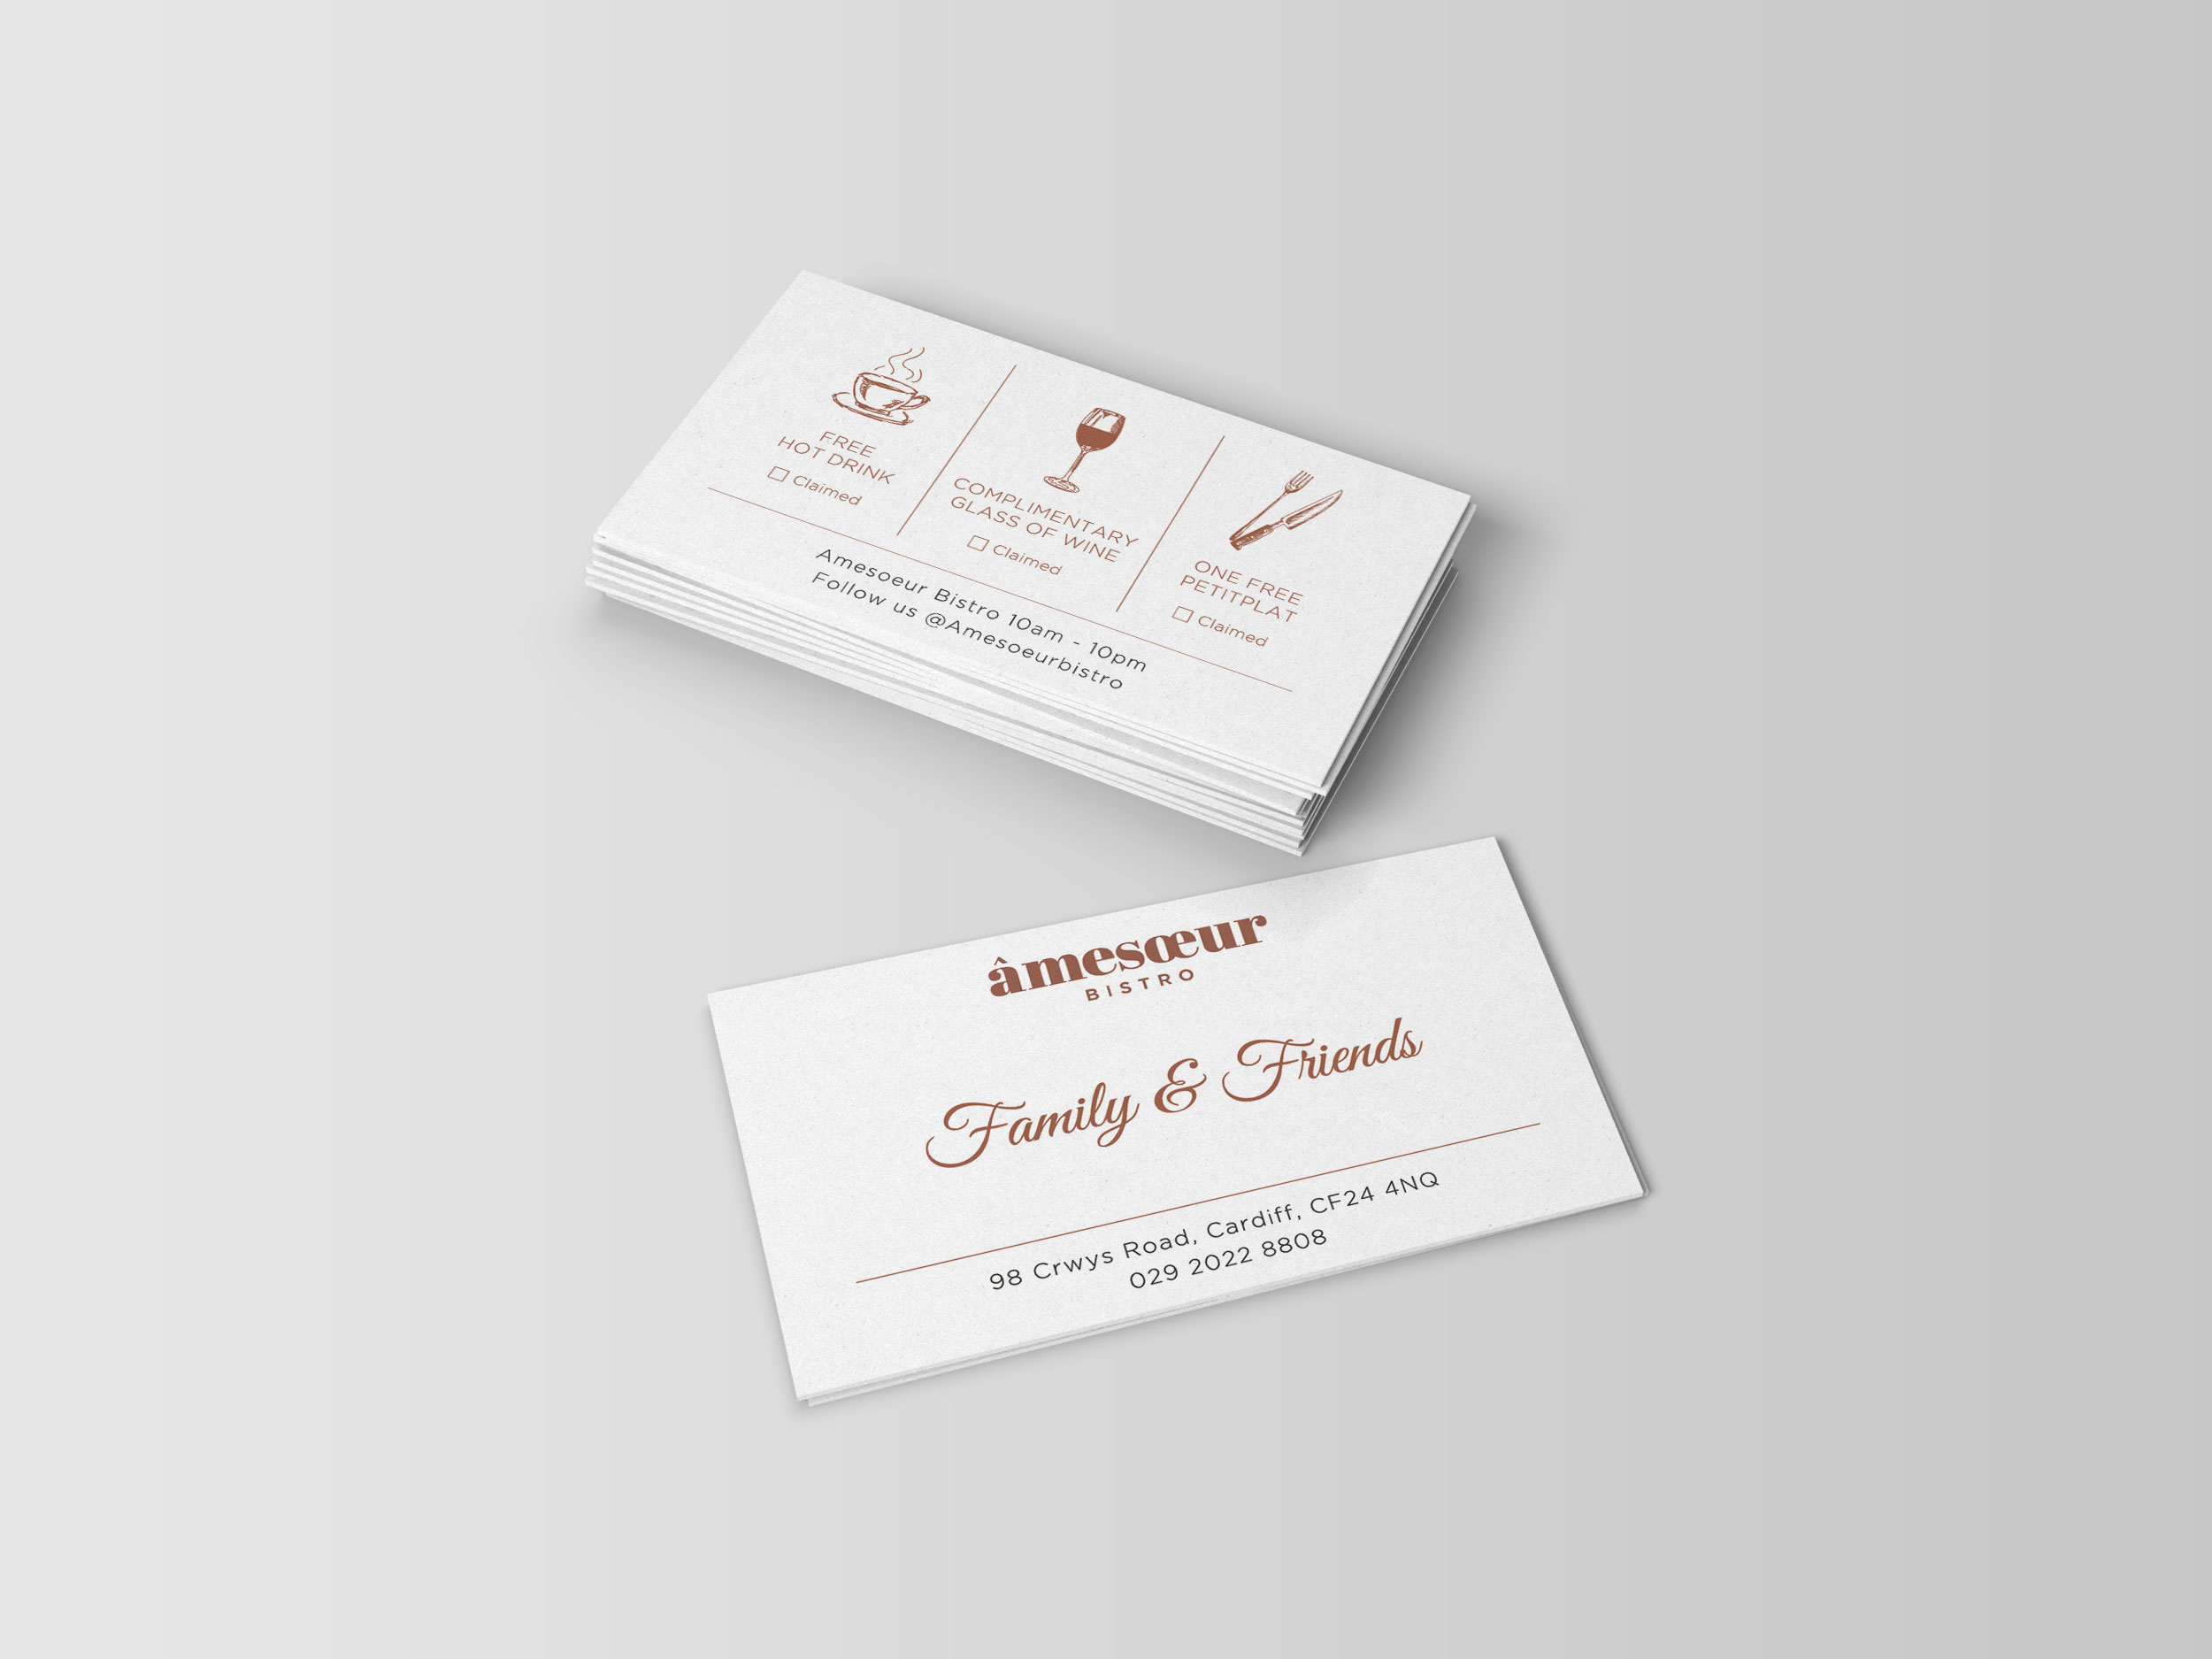 Amesoeur bistro loyalty card design Cardiff